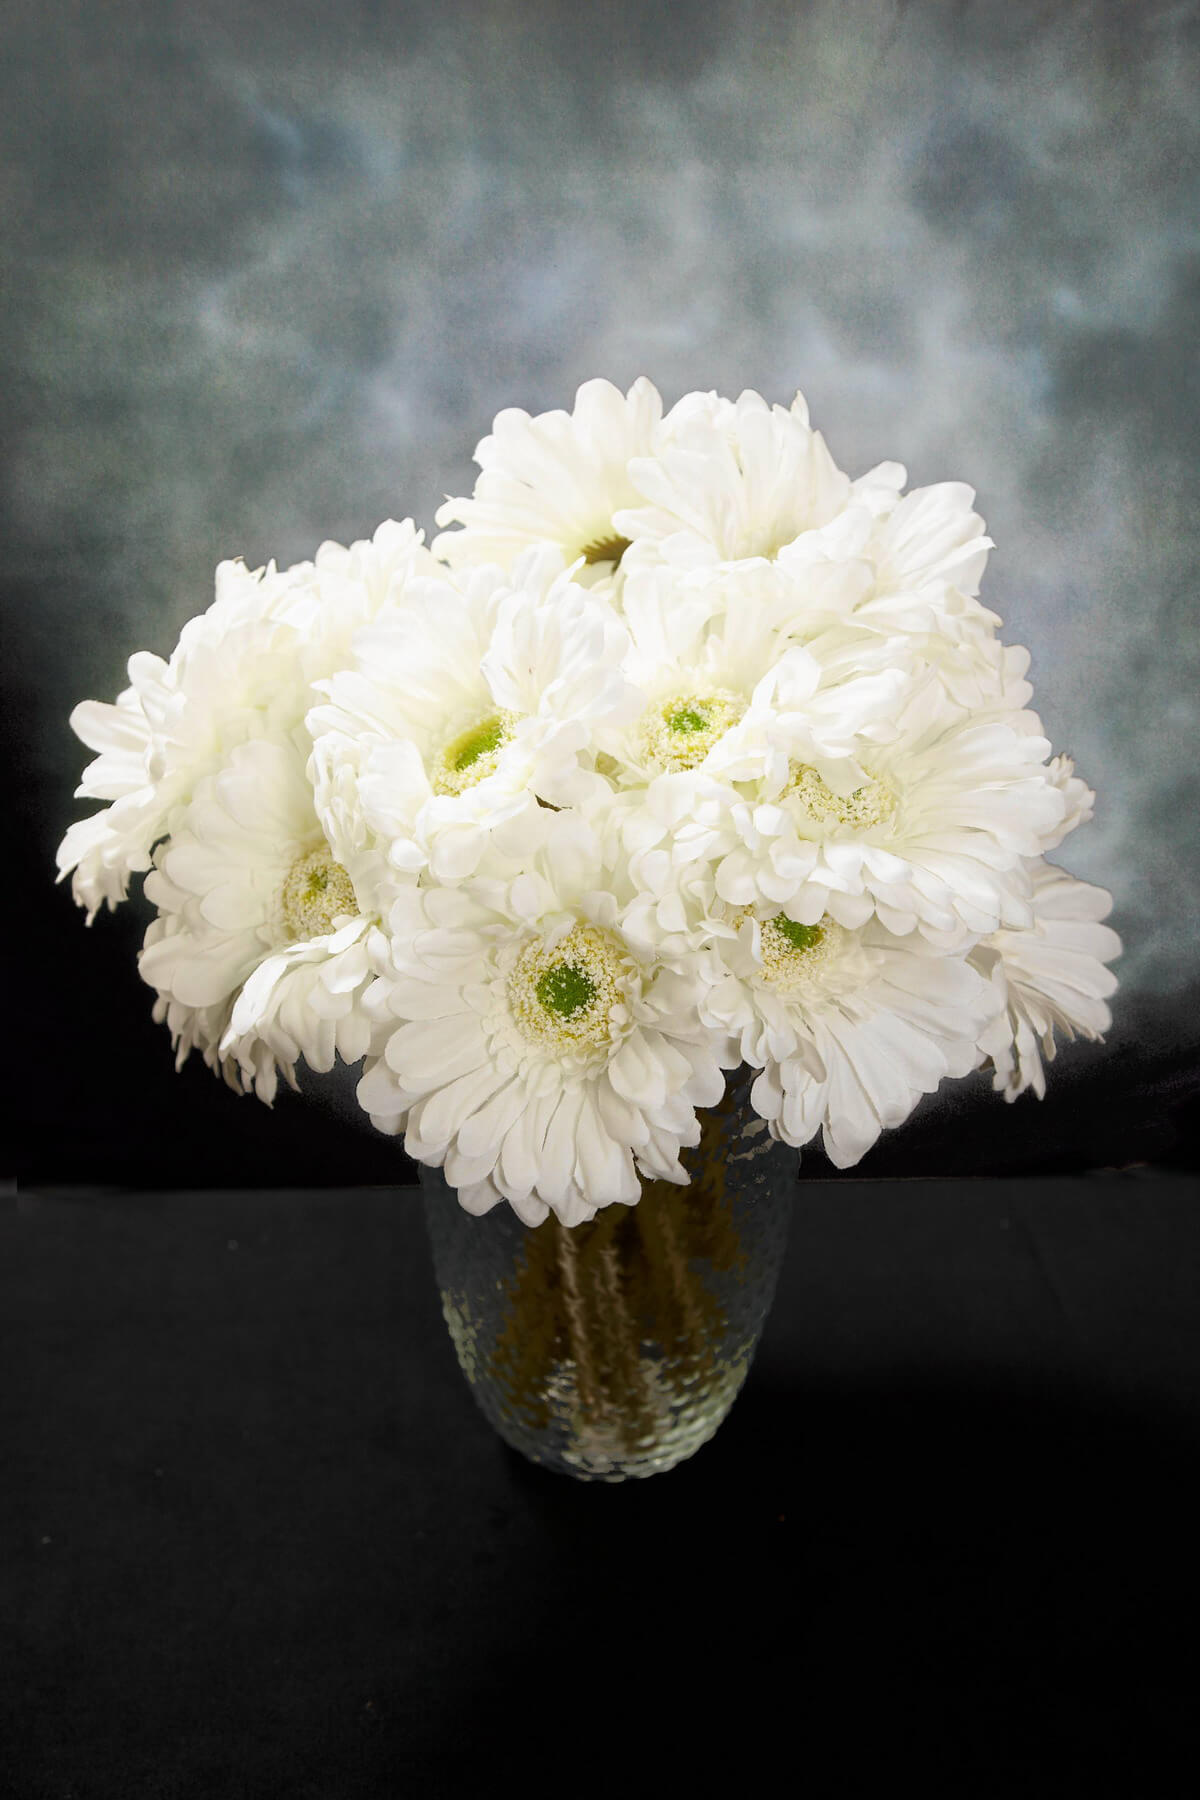 24 Cream White Gerbera Daisy Flowers 9